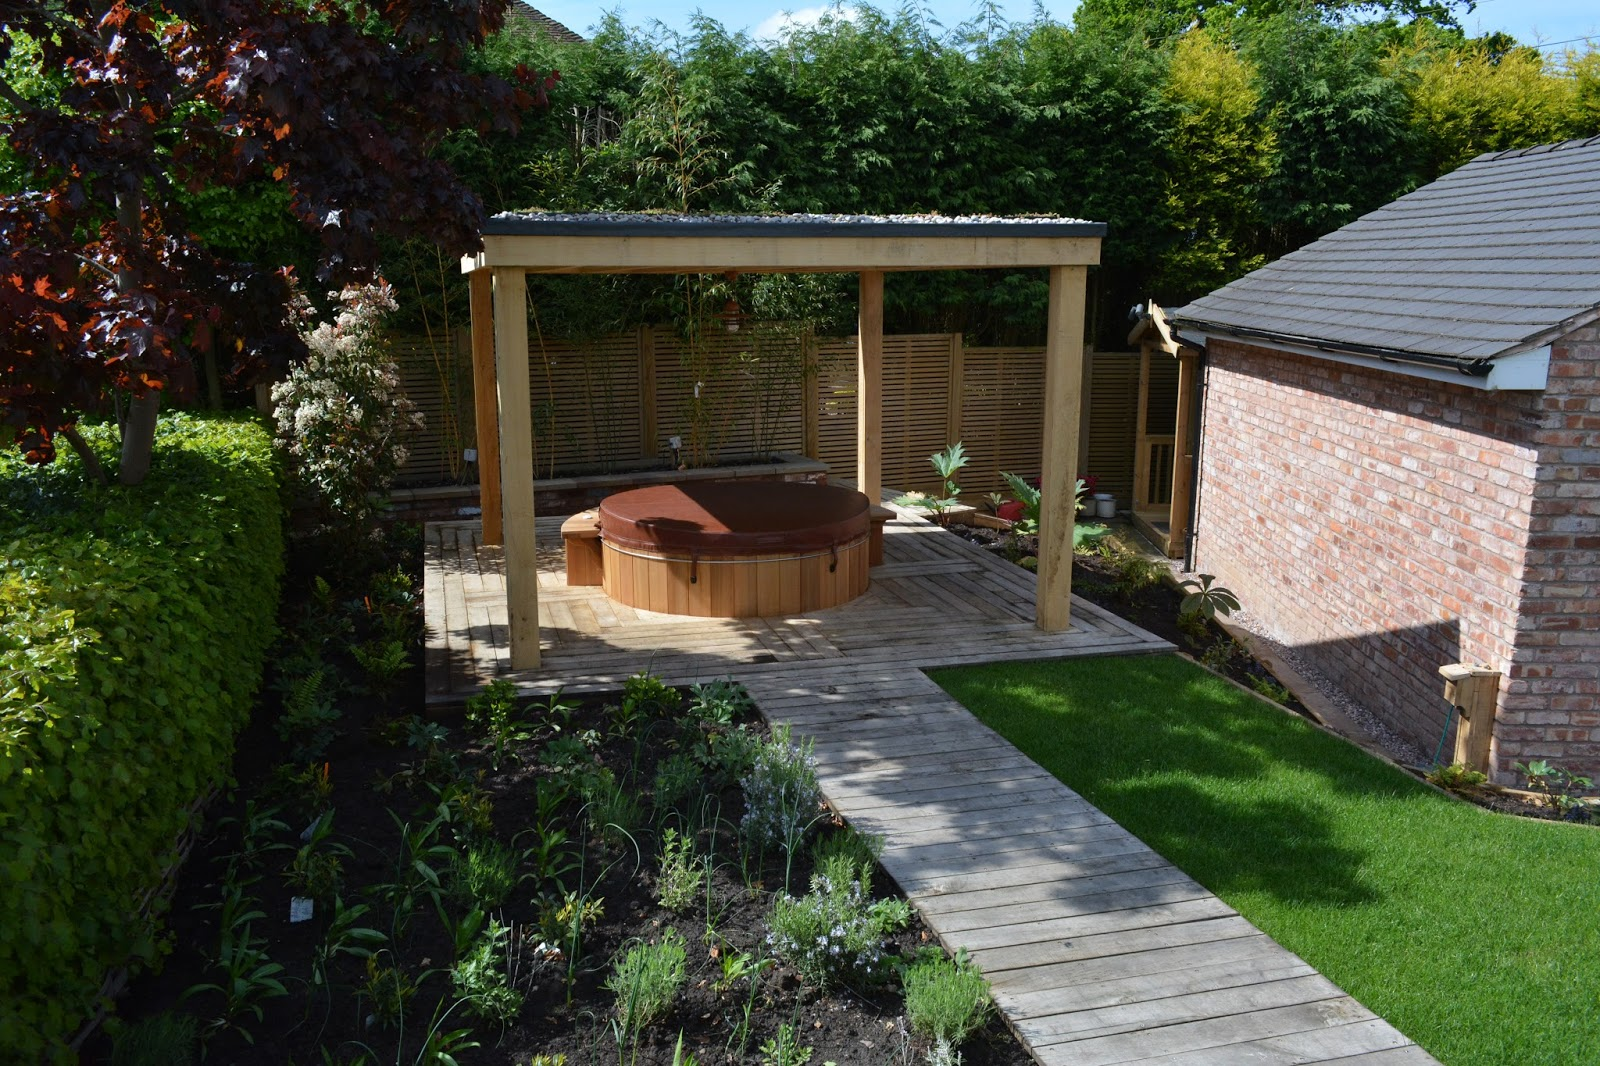 Merveilleux Western Red Cedar Hot Tub Designed Into This Location As Its The Area Of  Garden That Affords The Most Privacy And Shelter.